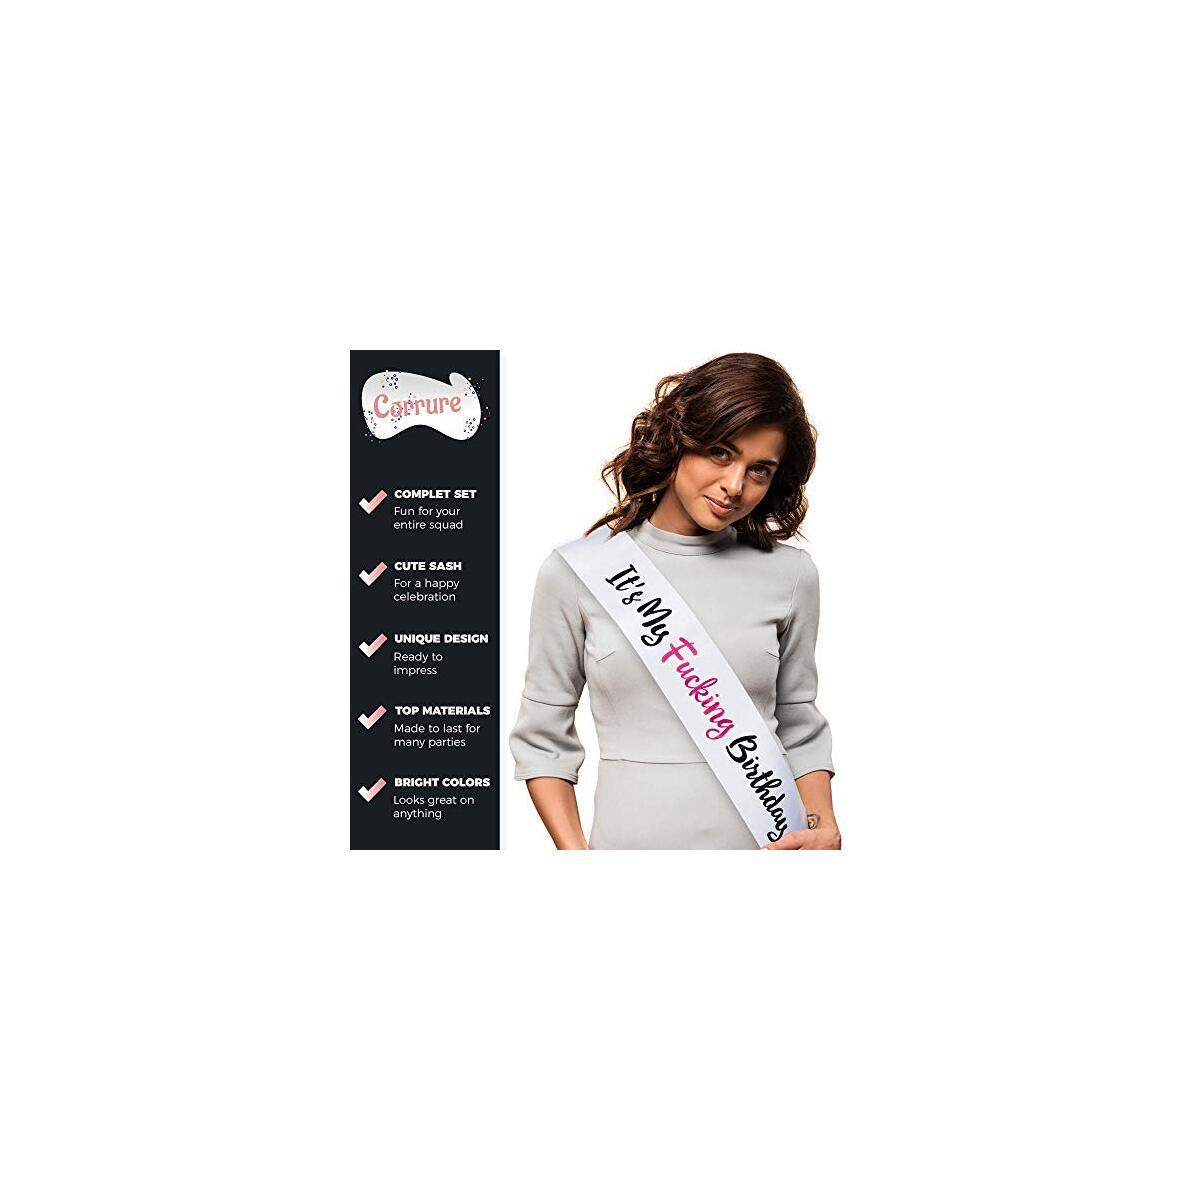 CORRURE 27pcs Birthday Sash, Buttons and Tattoos Set - Complete Pink Birthday Kit for The Most Amazing Party with Your Squad - Party Favors Supplies for Your 21st, 25th, 30th or Any Other Bday…